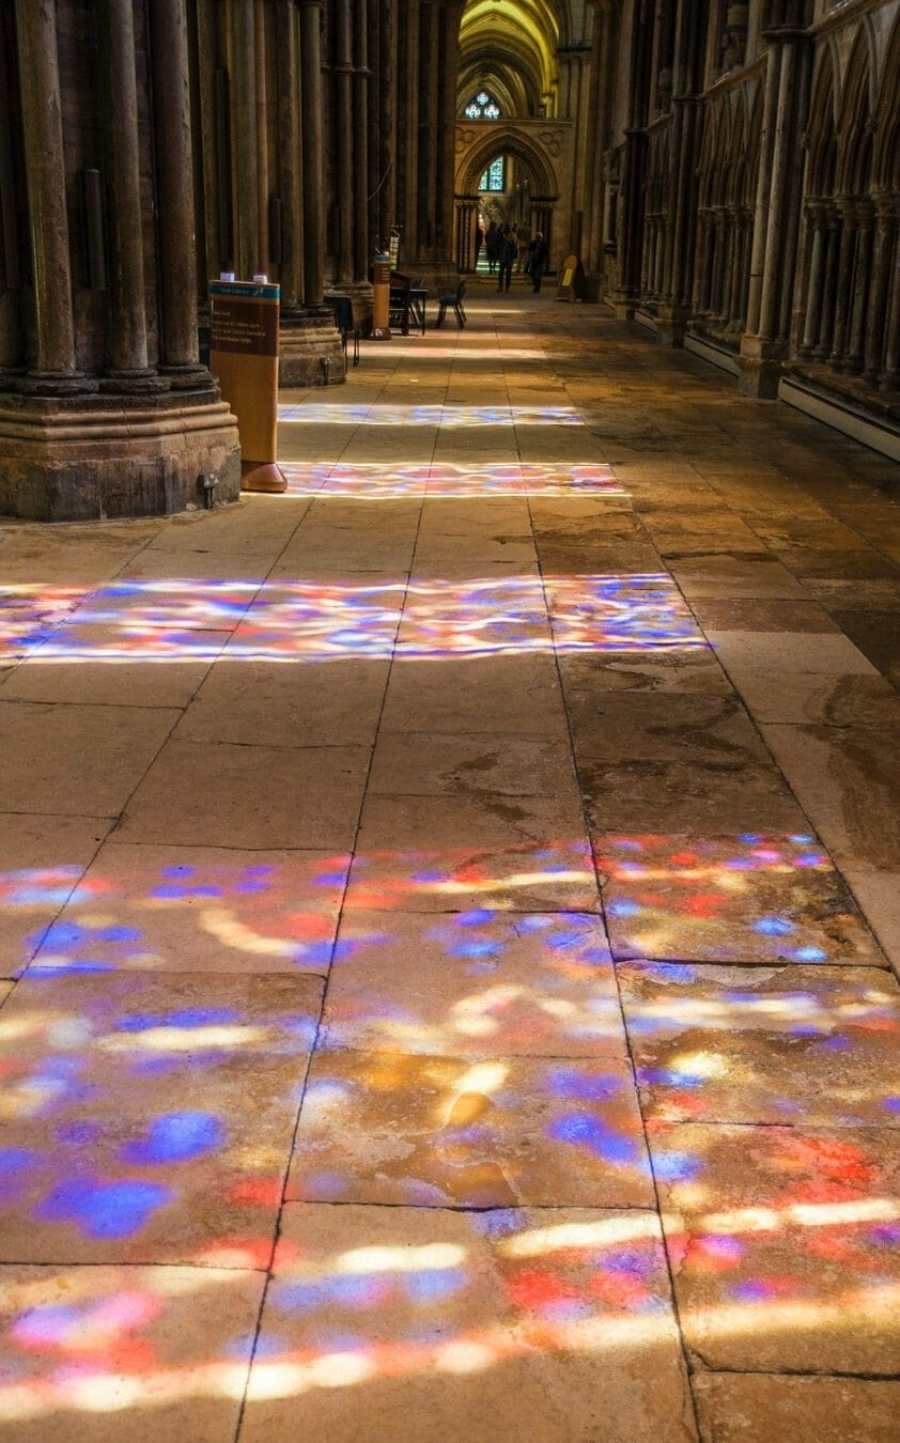 UK lincoln cathedral stained glass colors the floor